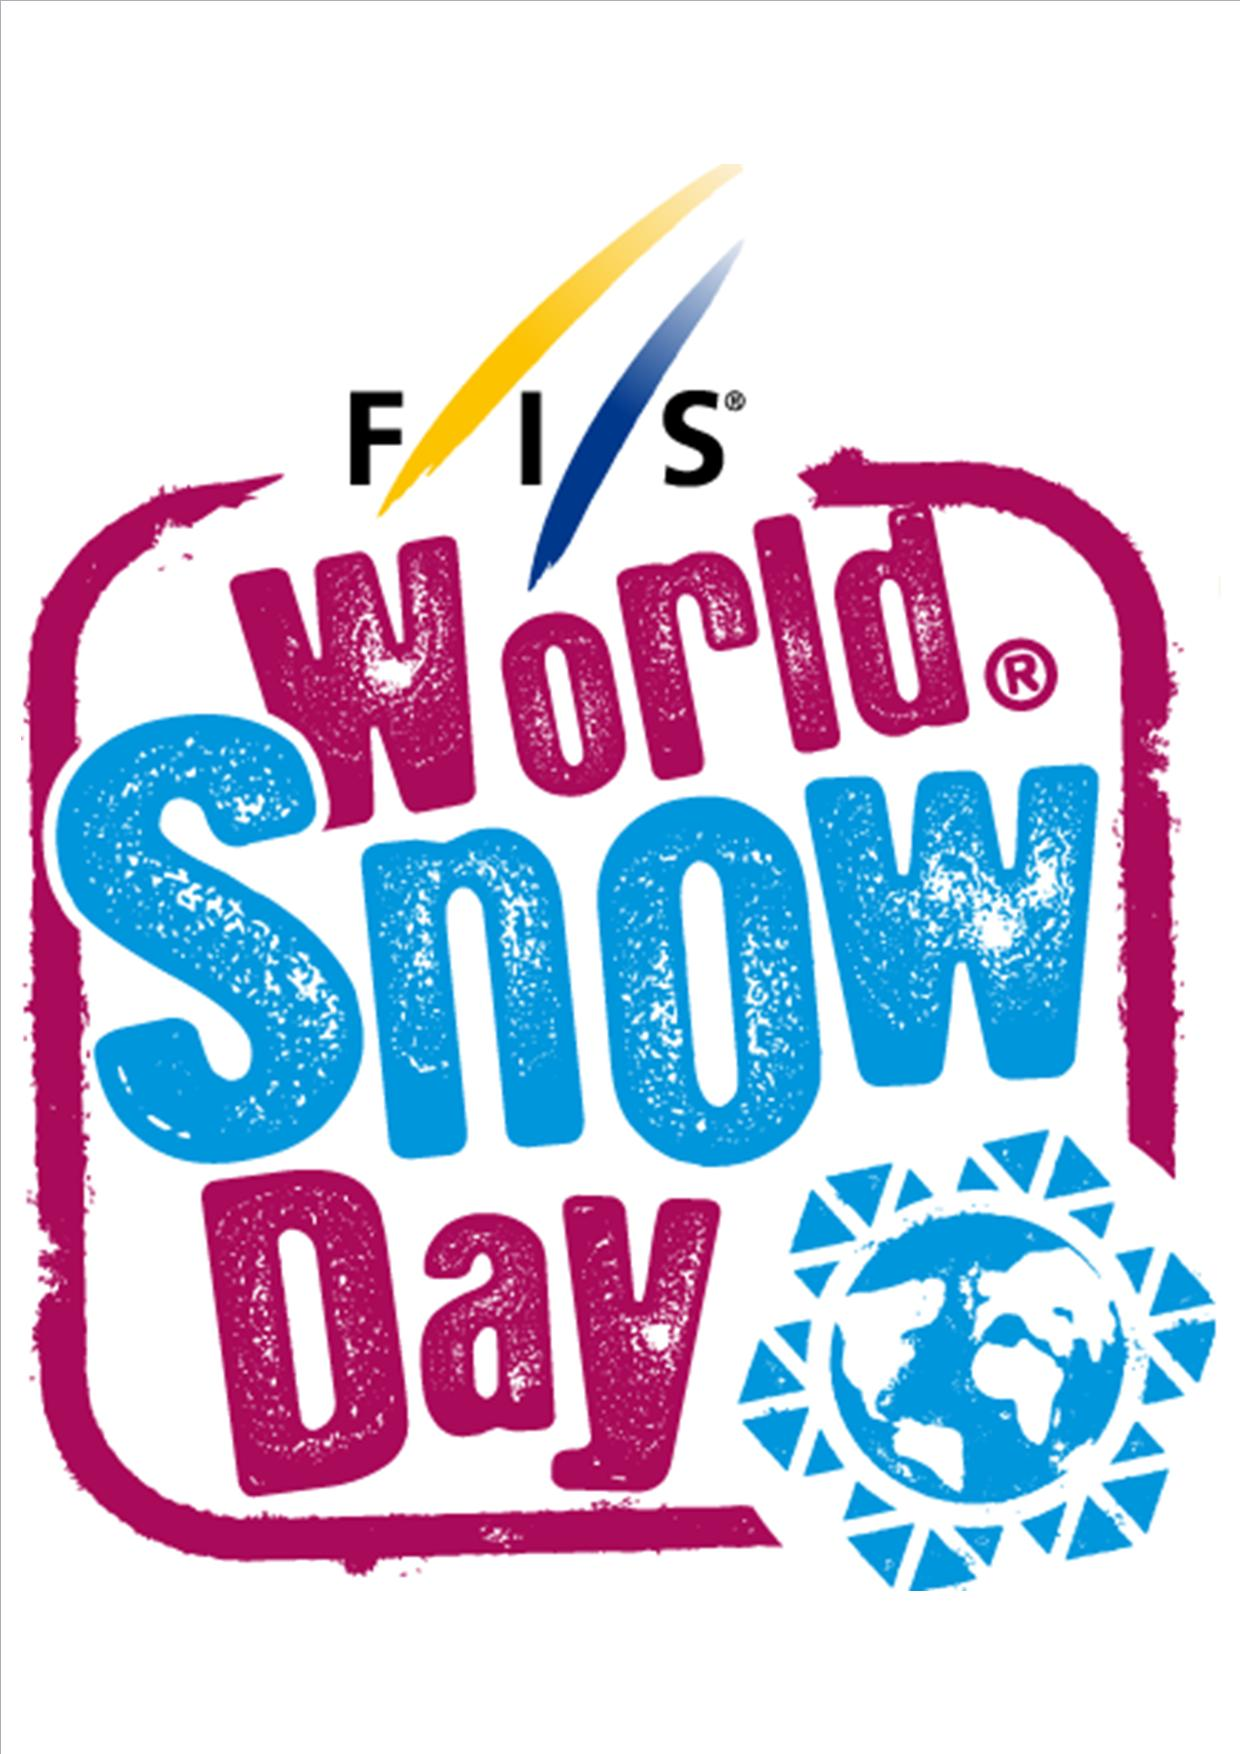 Vail and Beaver Creek will join with 225 resorts in 39 countries around the globe Sunday, January 22, to observe the inaugural FIS World Snow Day, and initiative to bring children to the snow.